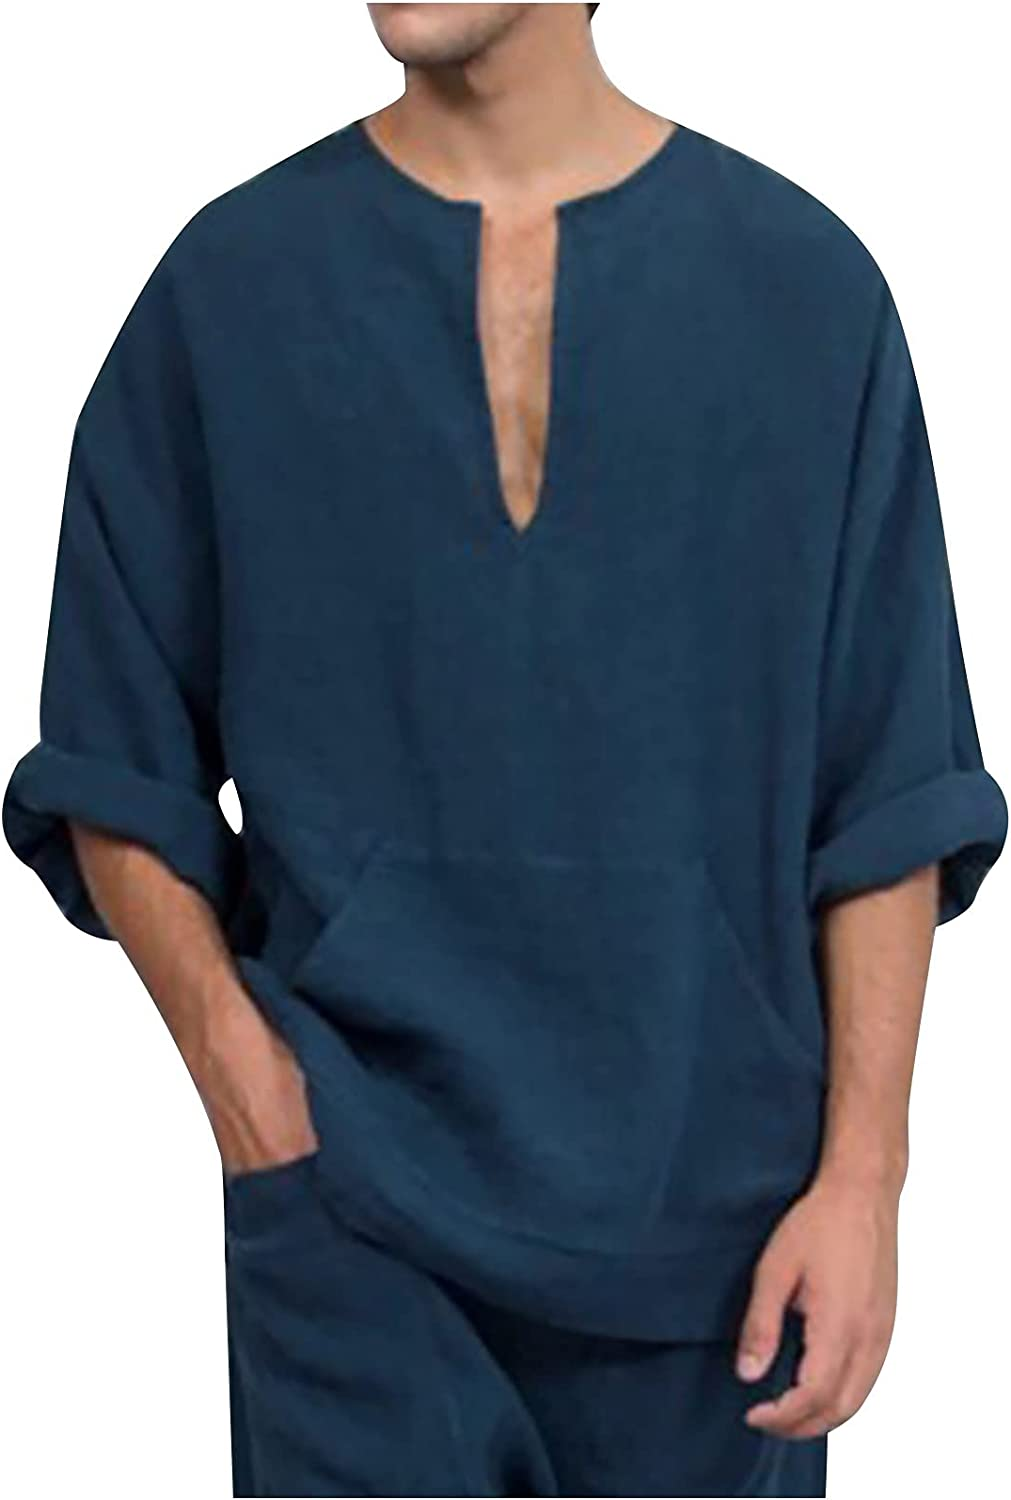 2021 Mens Mid Sleeve Cotton Linen Shirts Casual V-Neck Solid Loose T-Shirt Fashion Tops Blouse